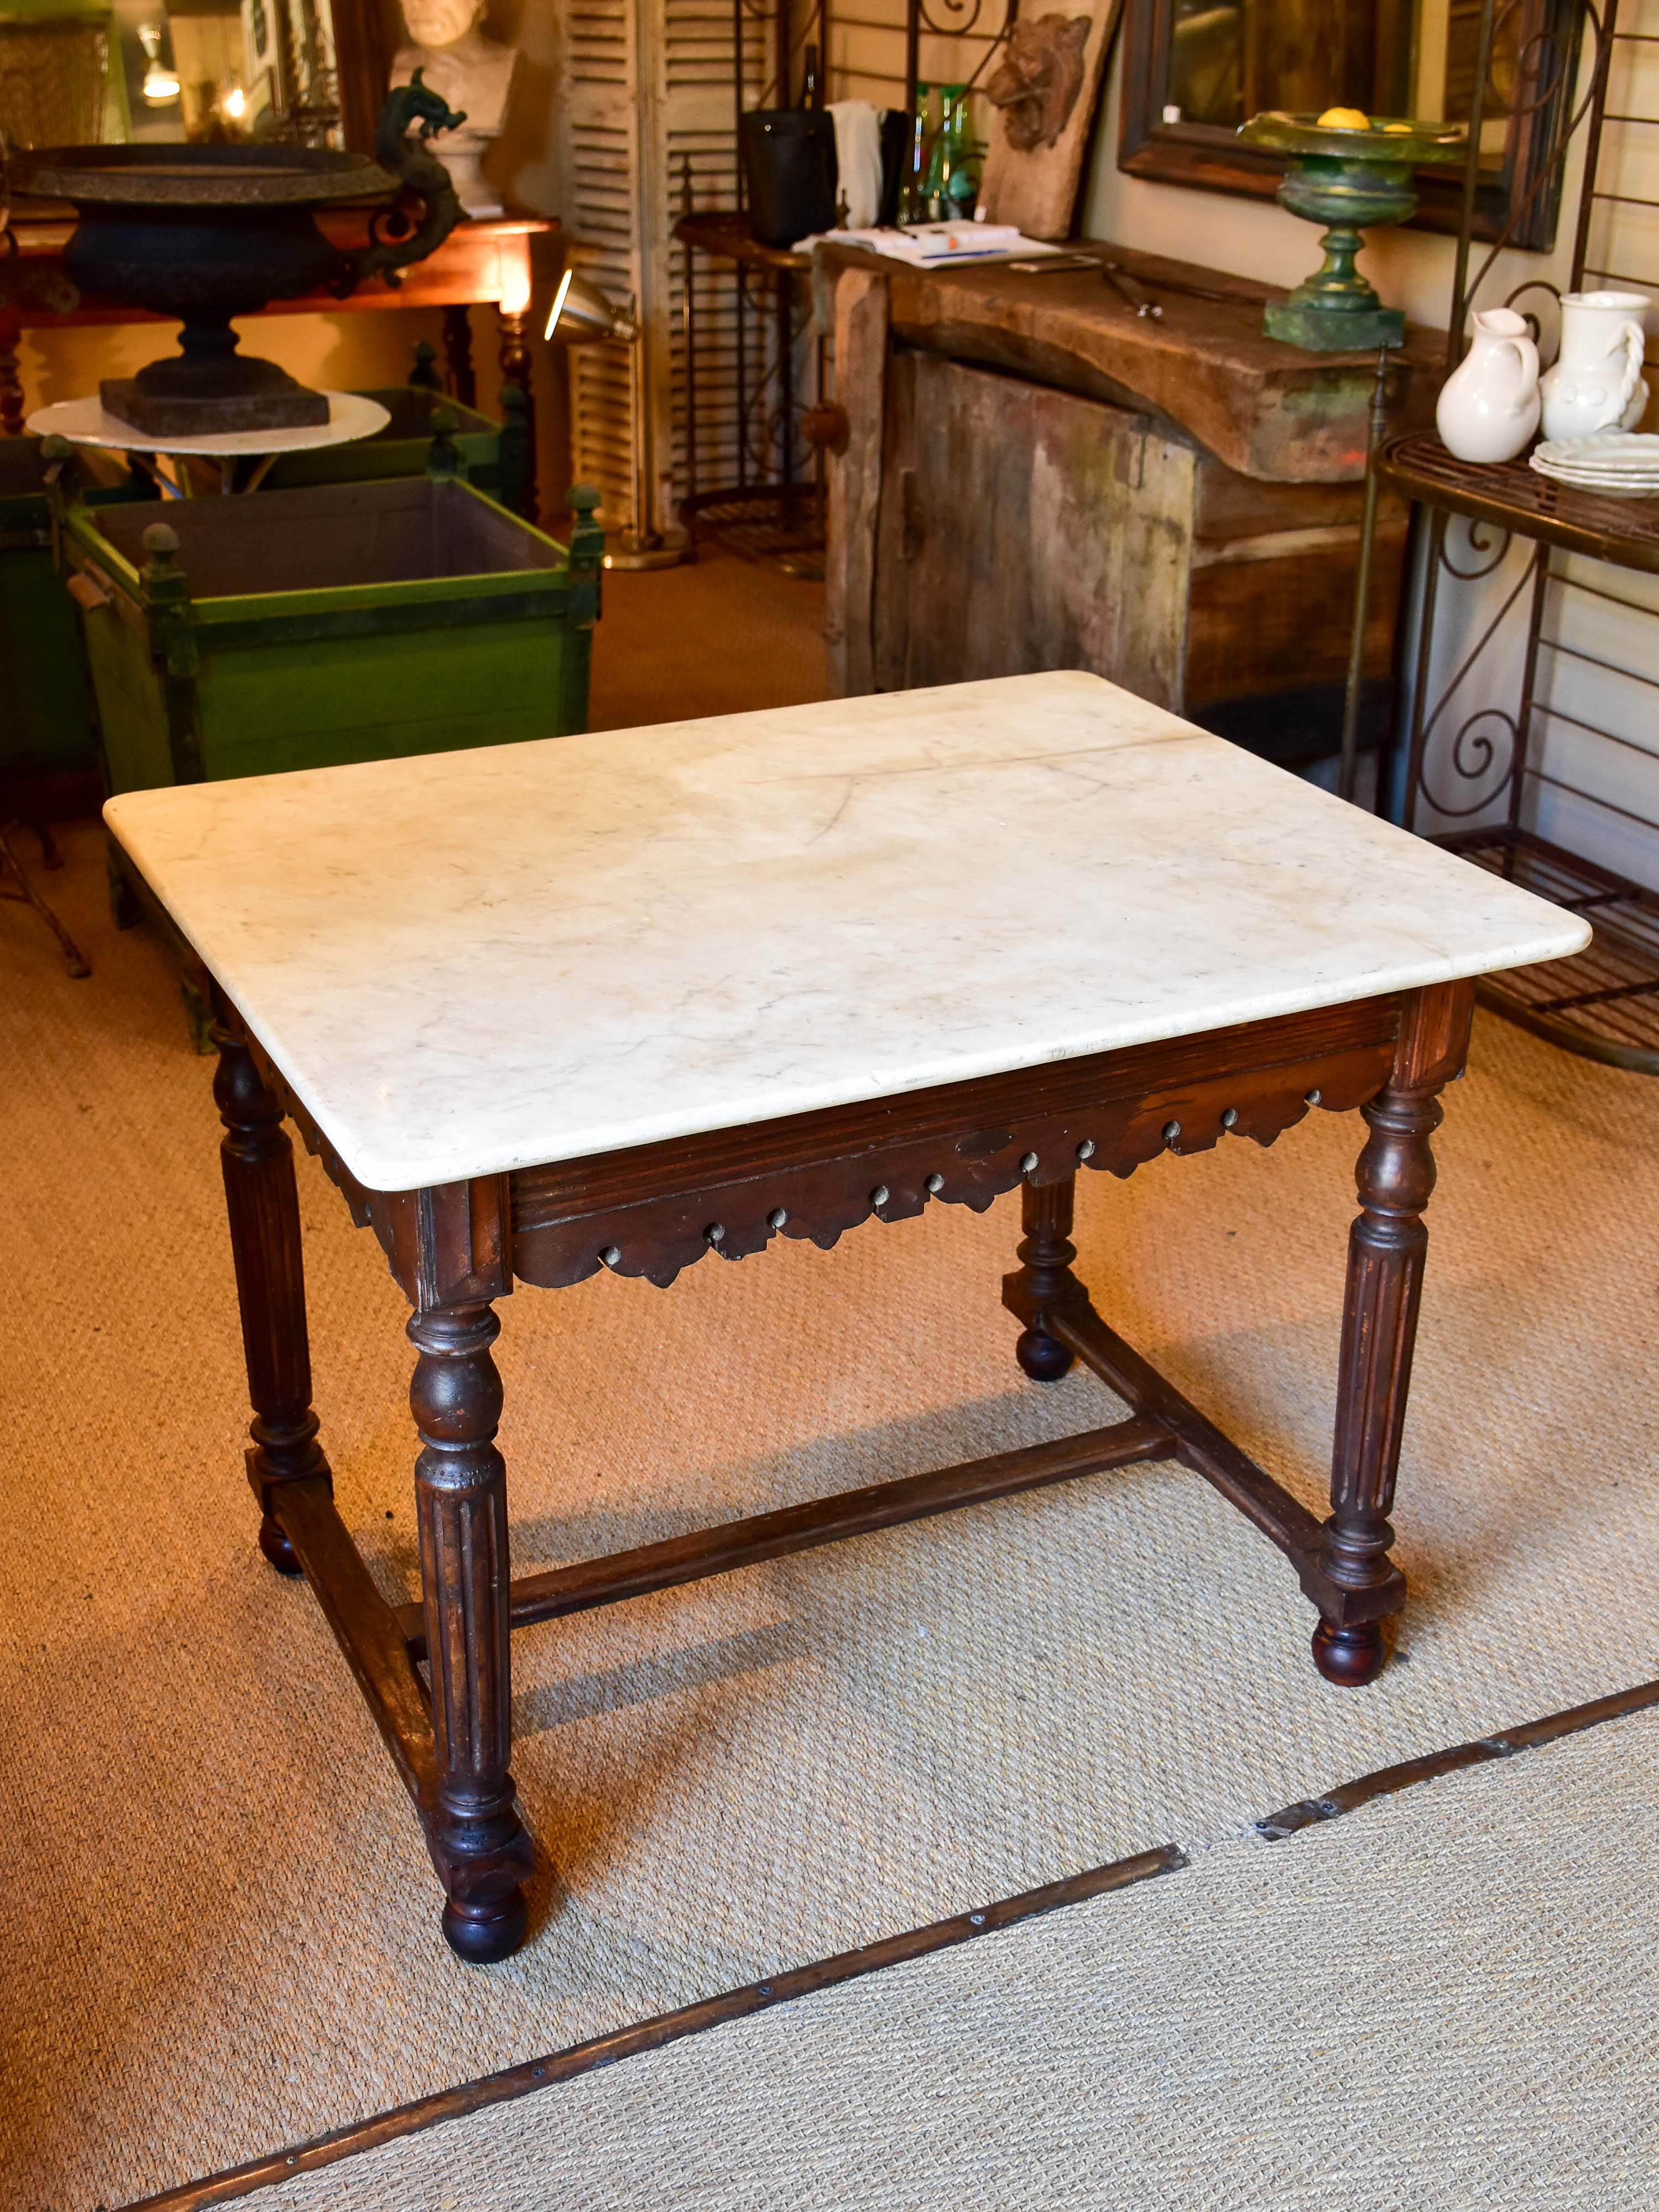 Antique French butcher's display table with marble top